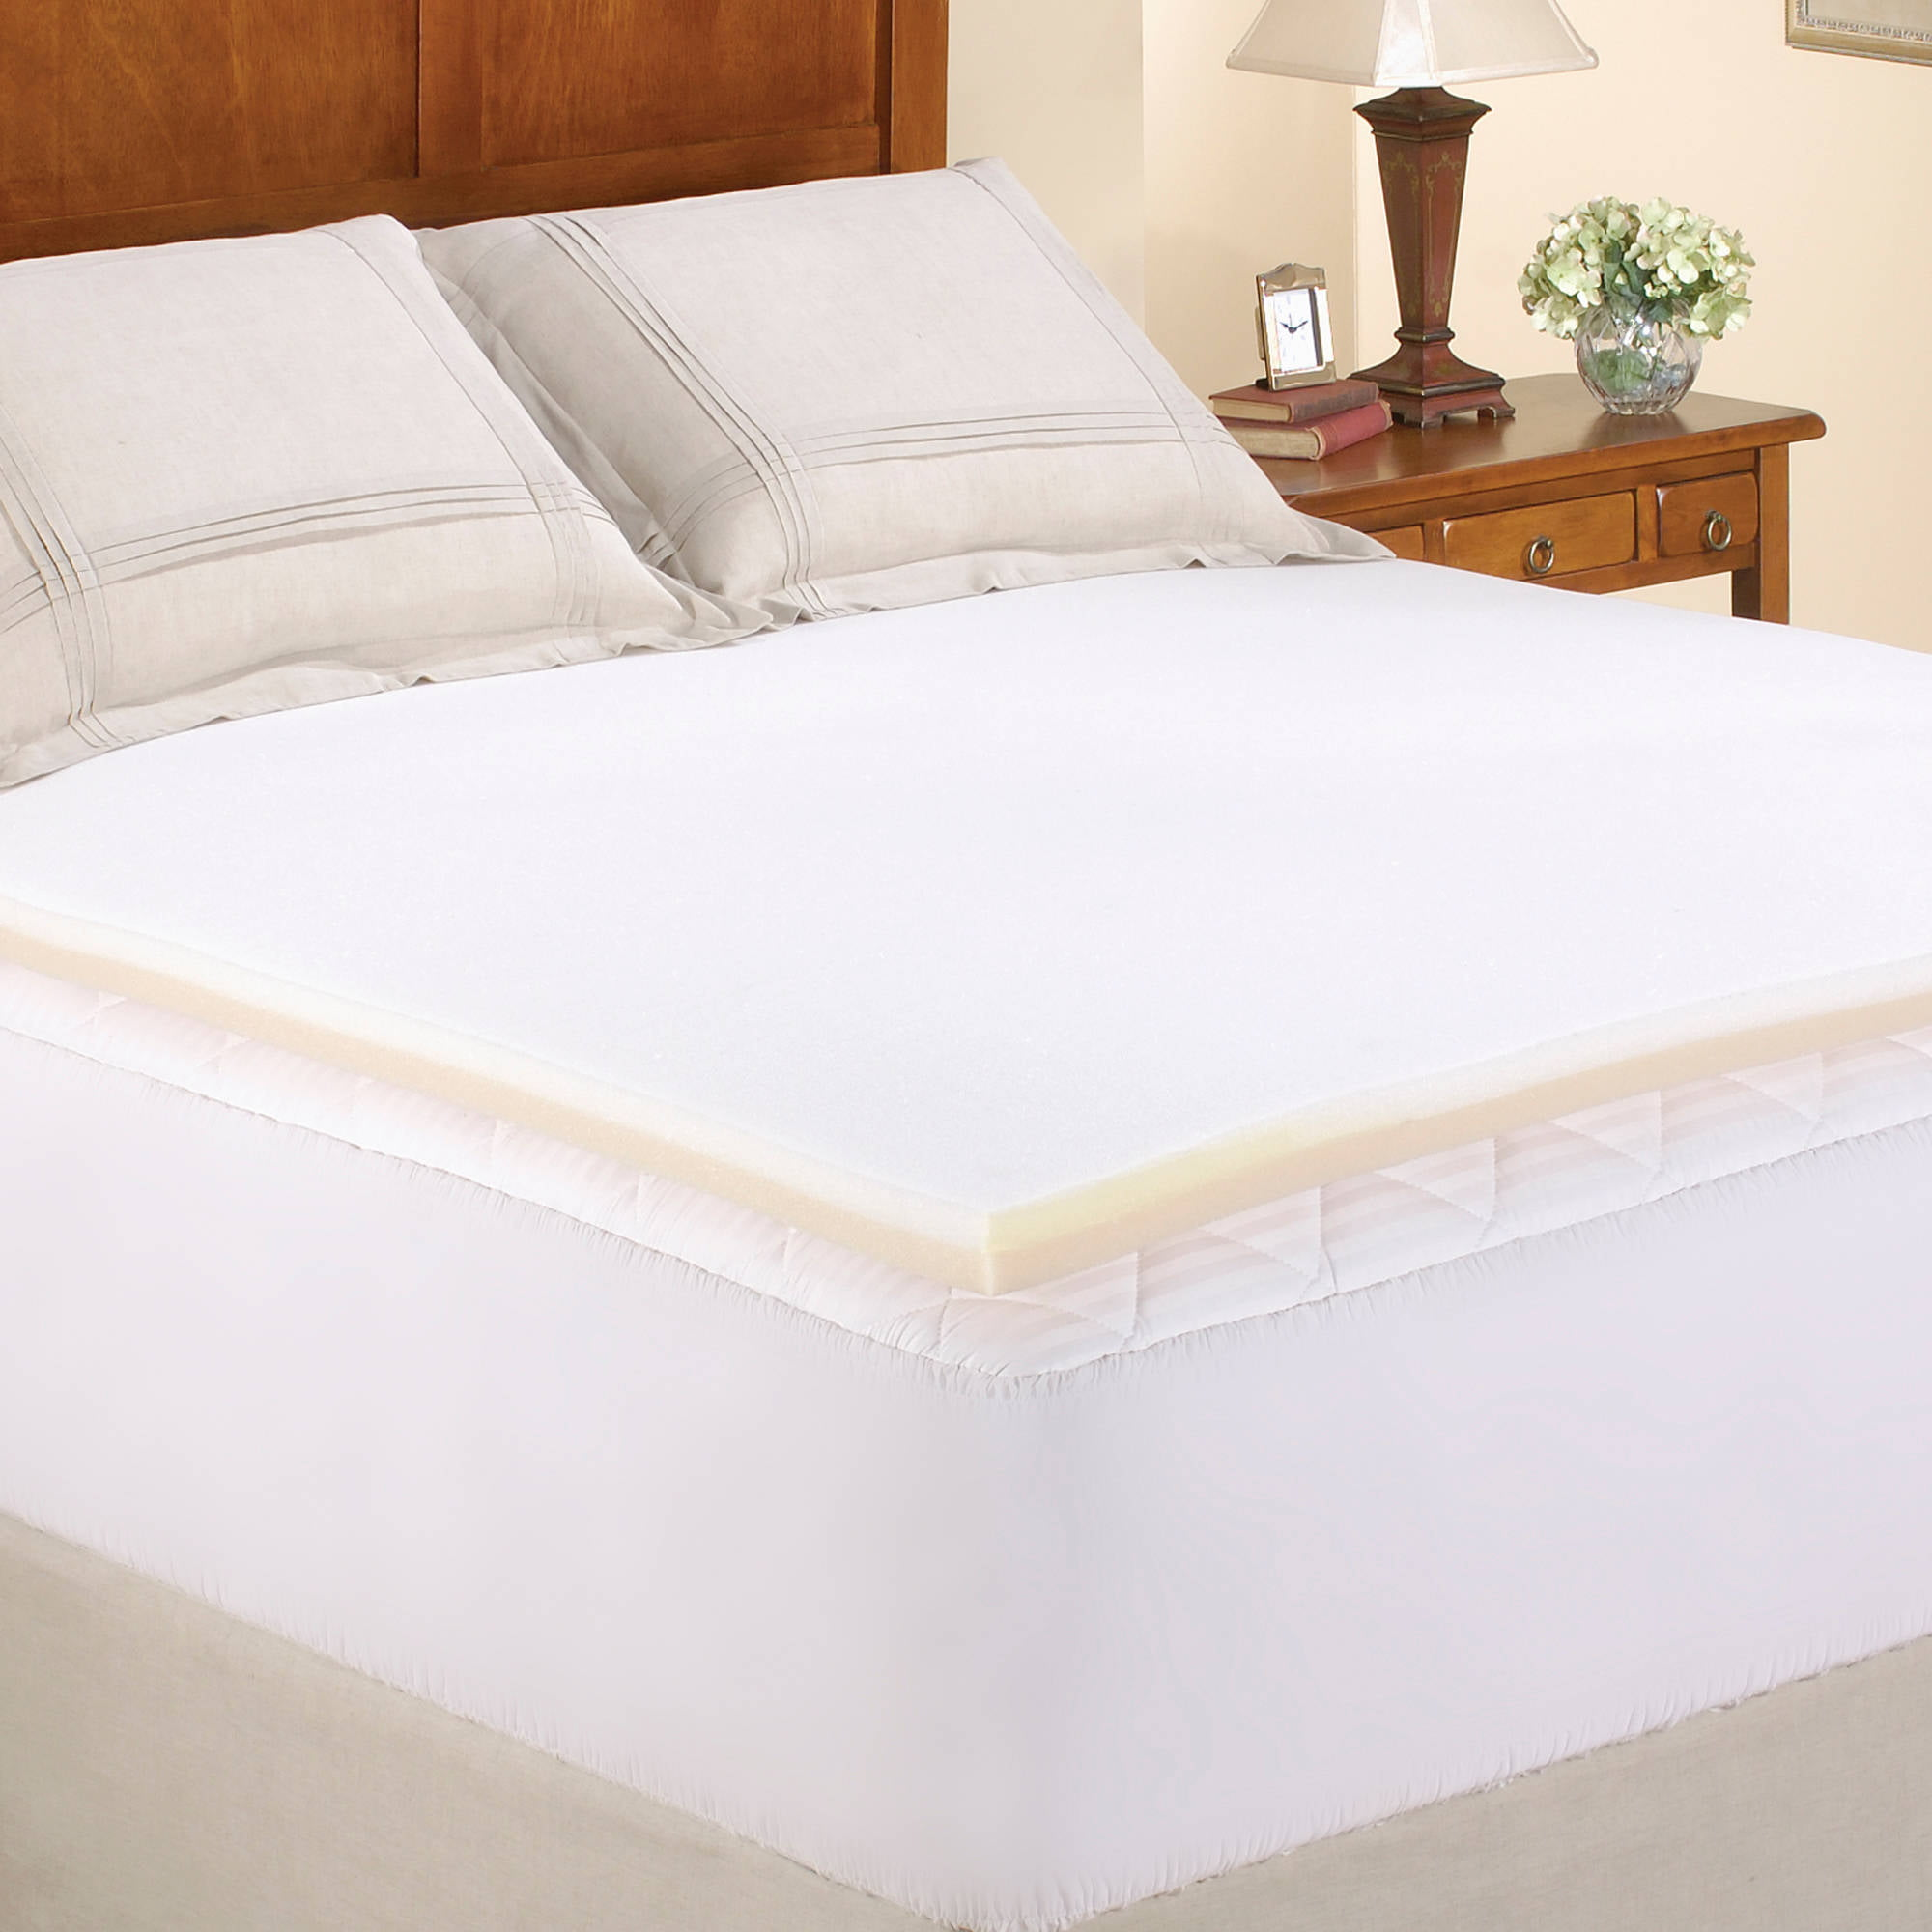 "Mainstays 1 5"" Memory Foam bo Mattress Topper in Multiple Sizes"